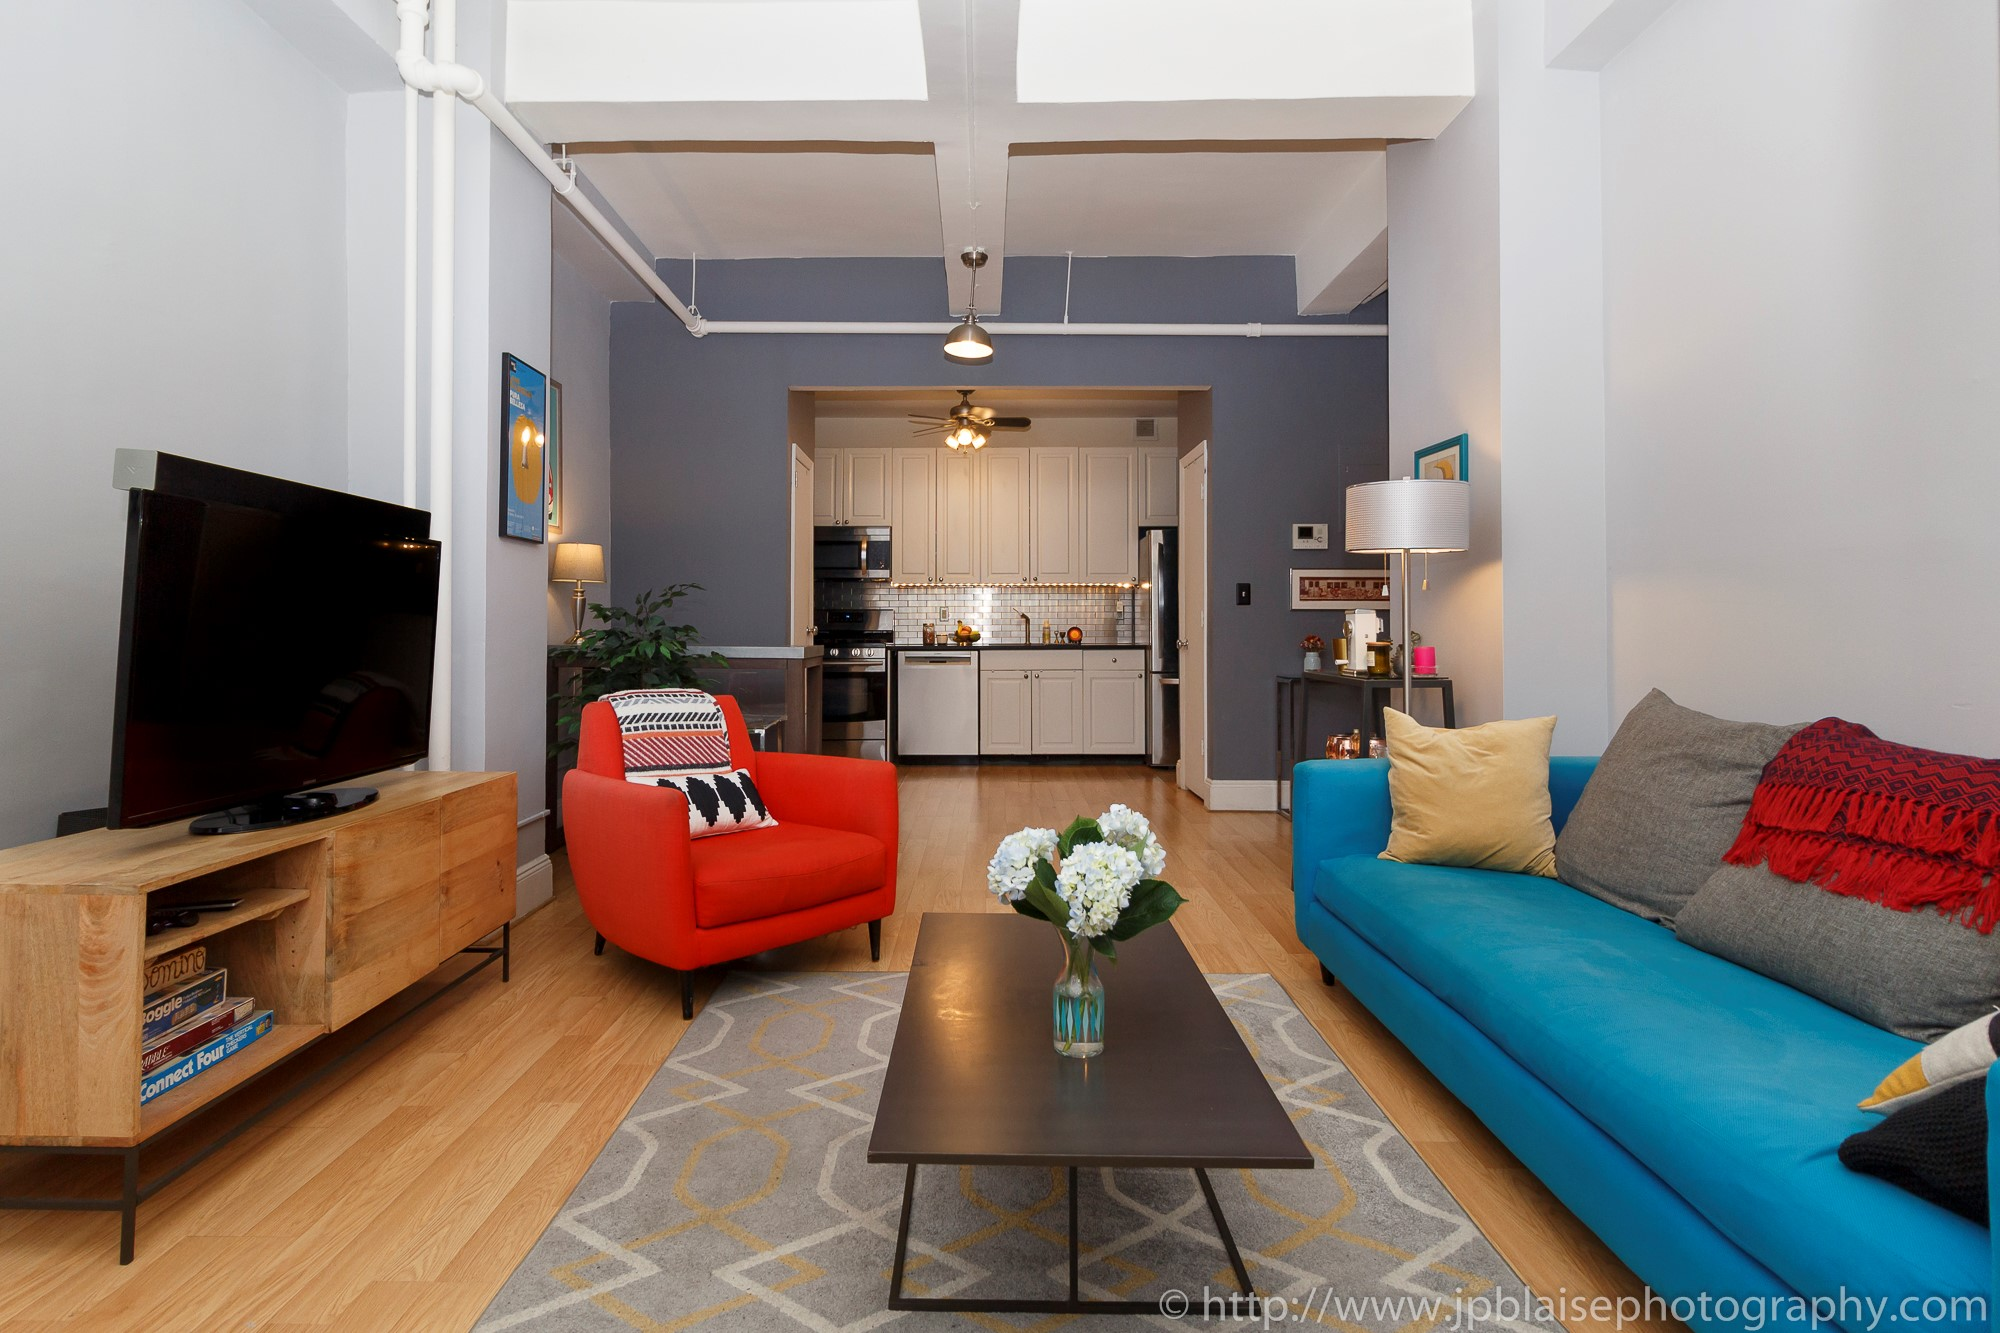 Nyc apartment photographer real estate new york studio loft brooklyn heights living